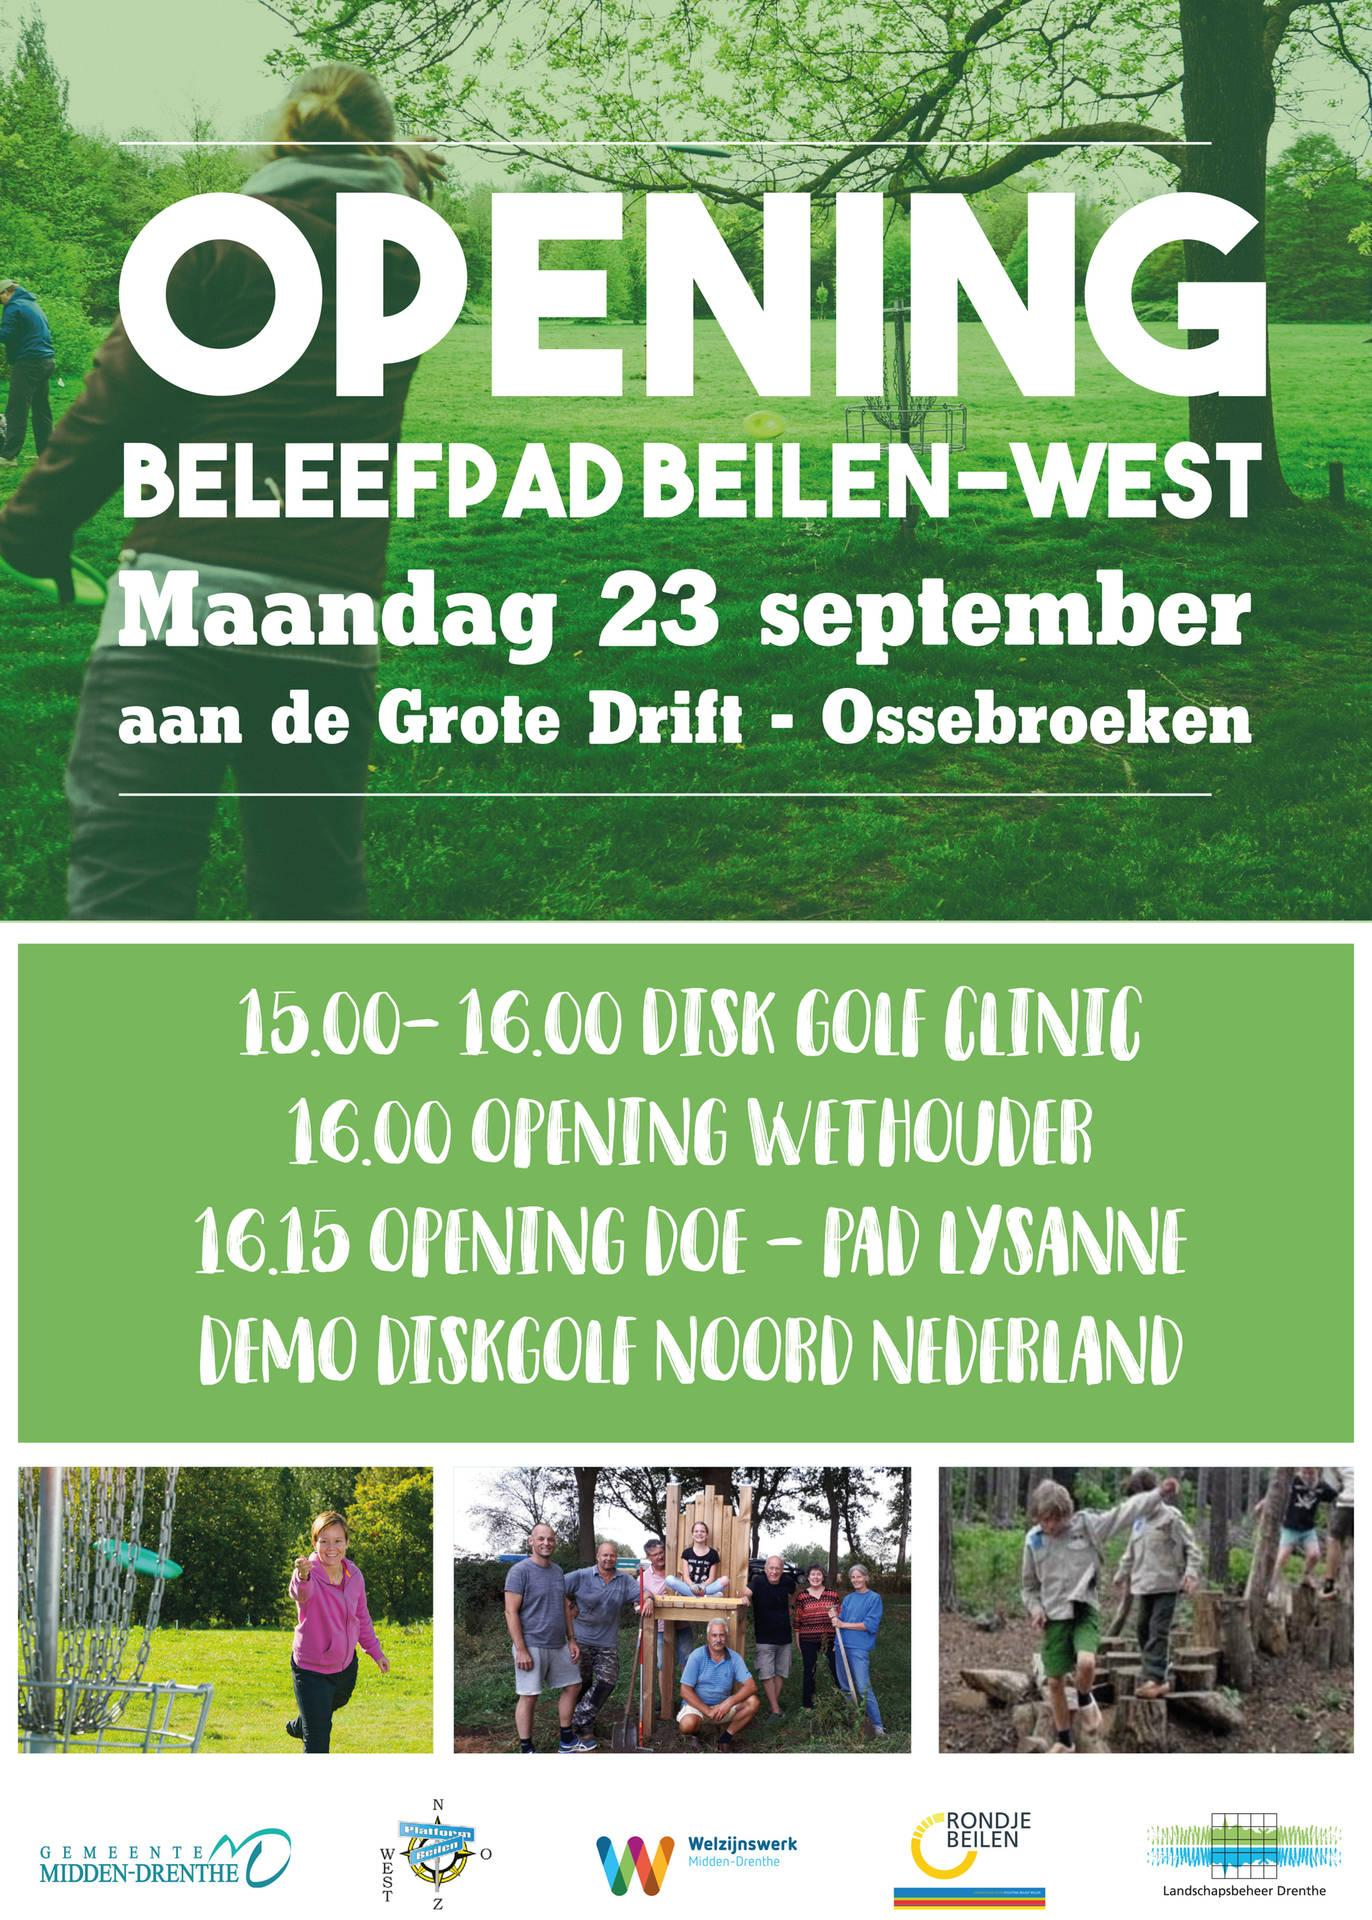 Opening Doe- en Beleefpad op 23 september 2019